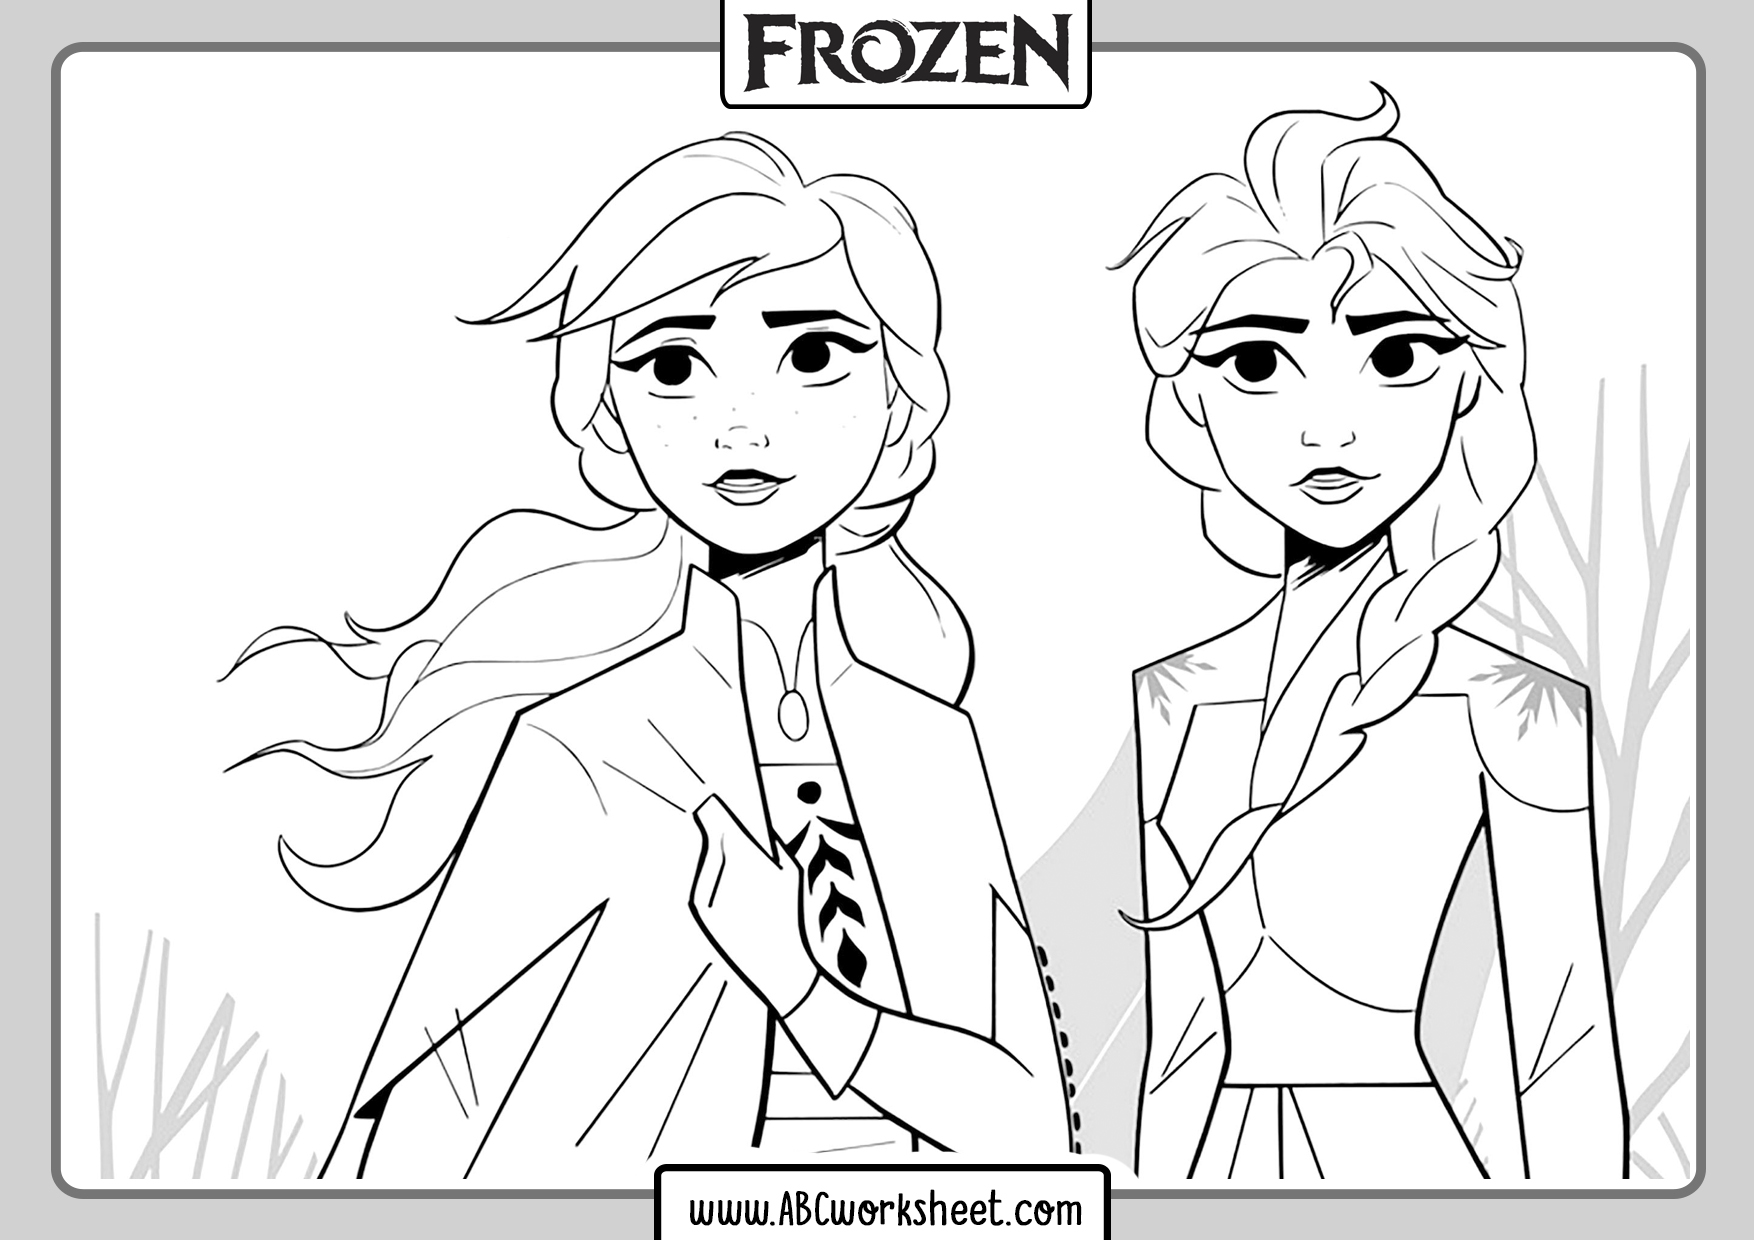 elsa frozen coloring sheets frozen coloring pages elsa ice castle at getcoloringscom frozen coloring elsa sheets